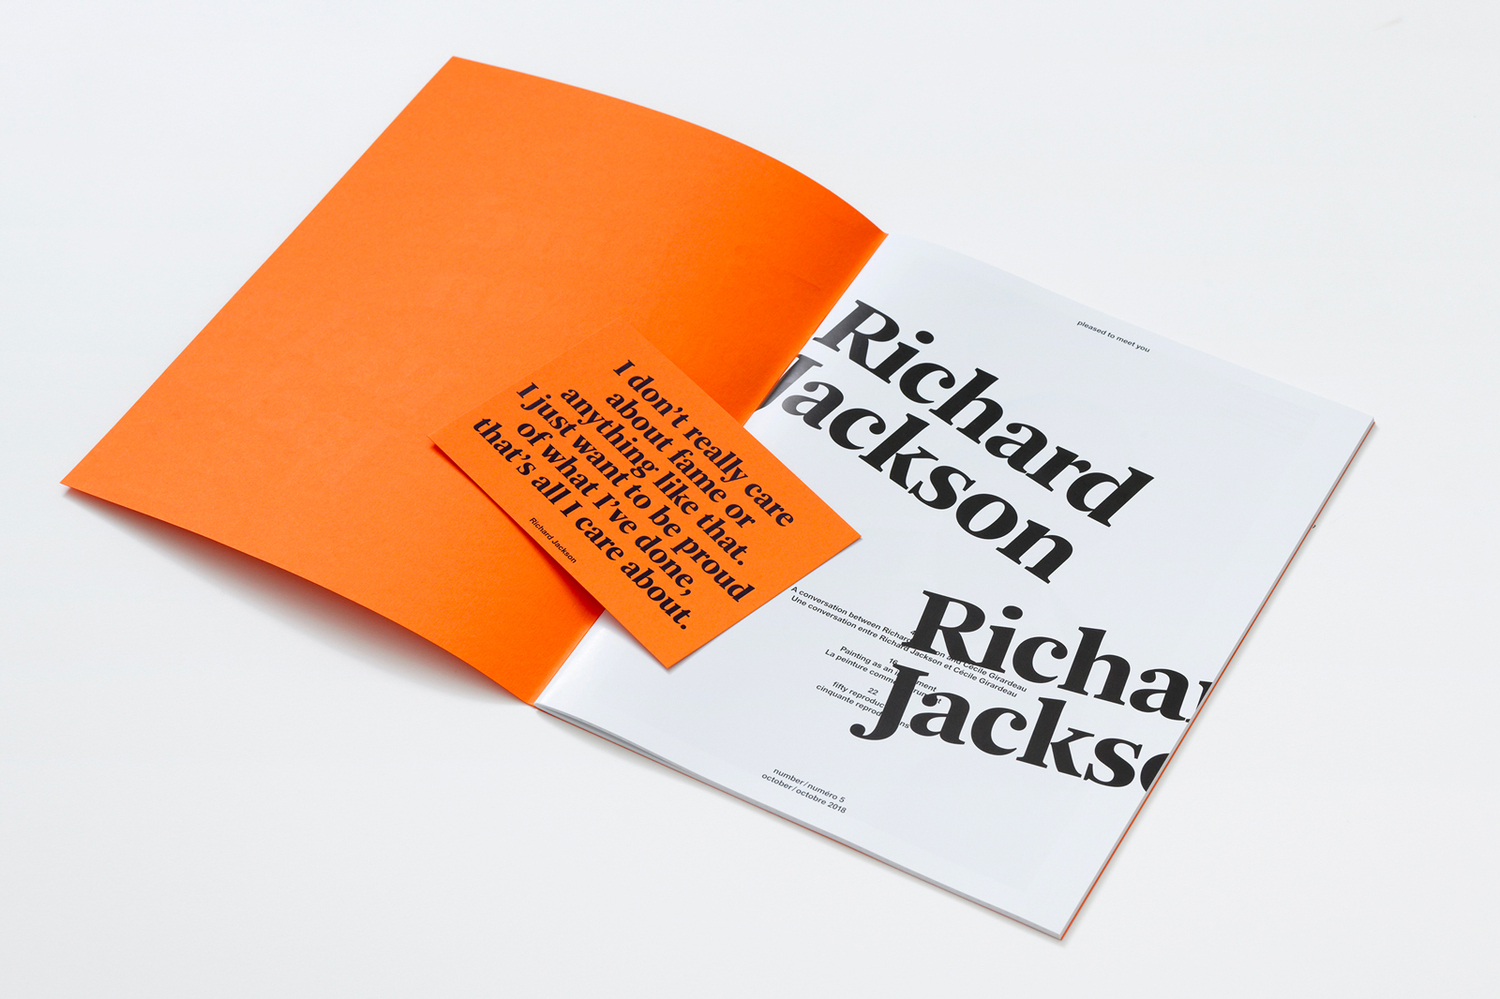 Pleased to meet you #5 - Richard Jackson